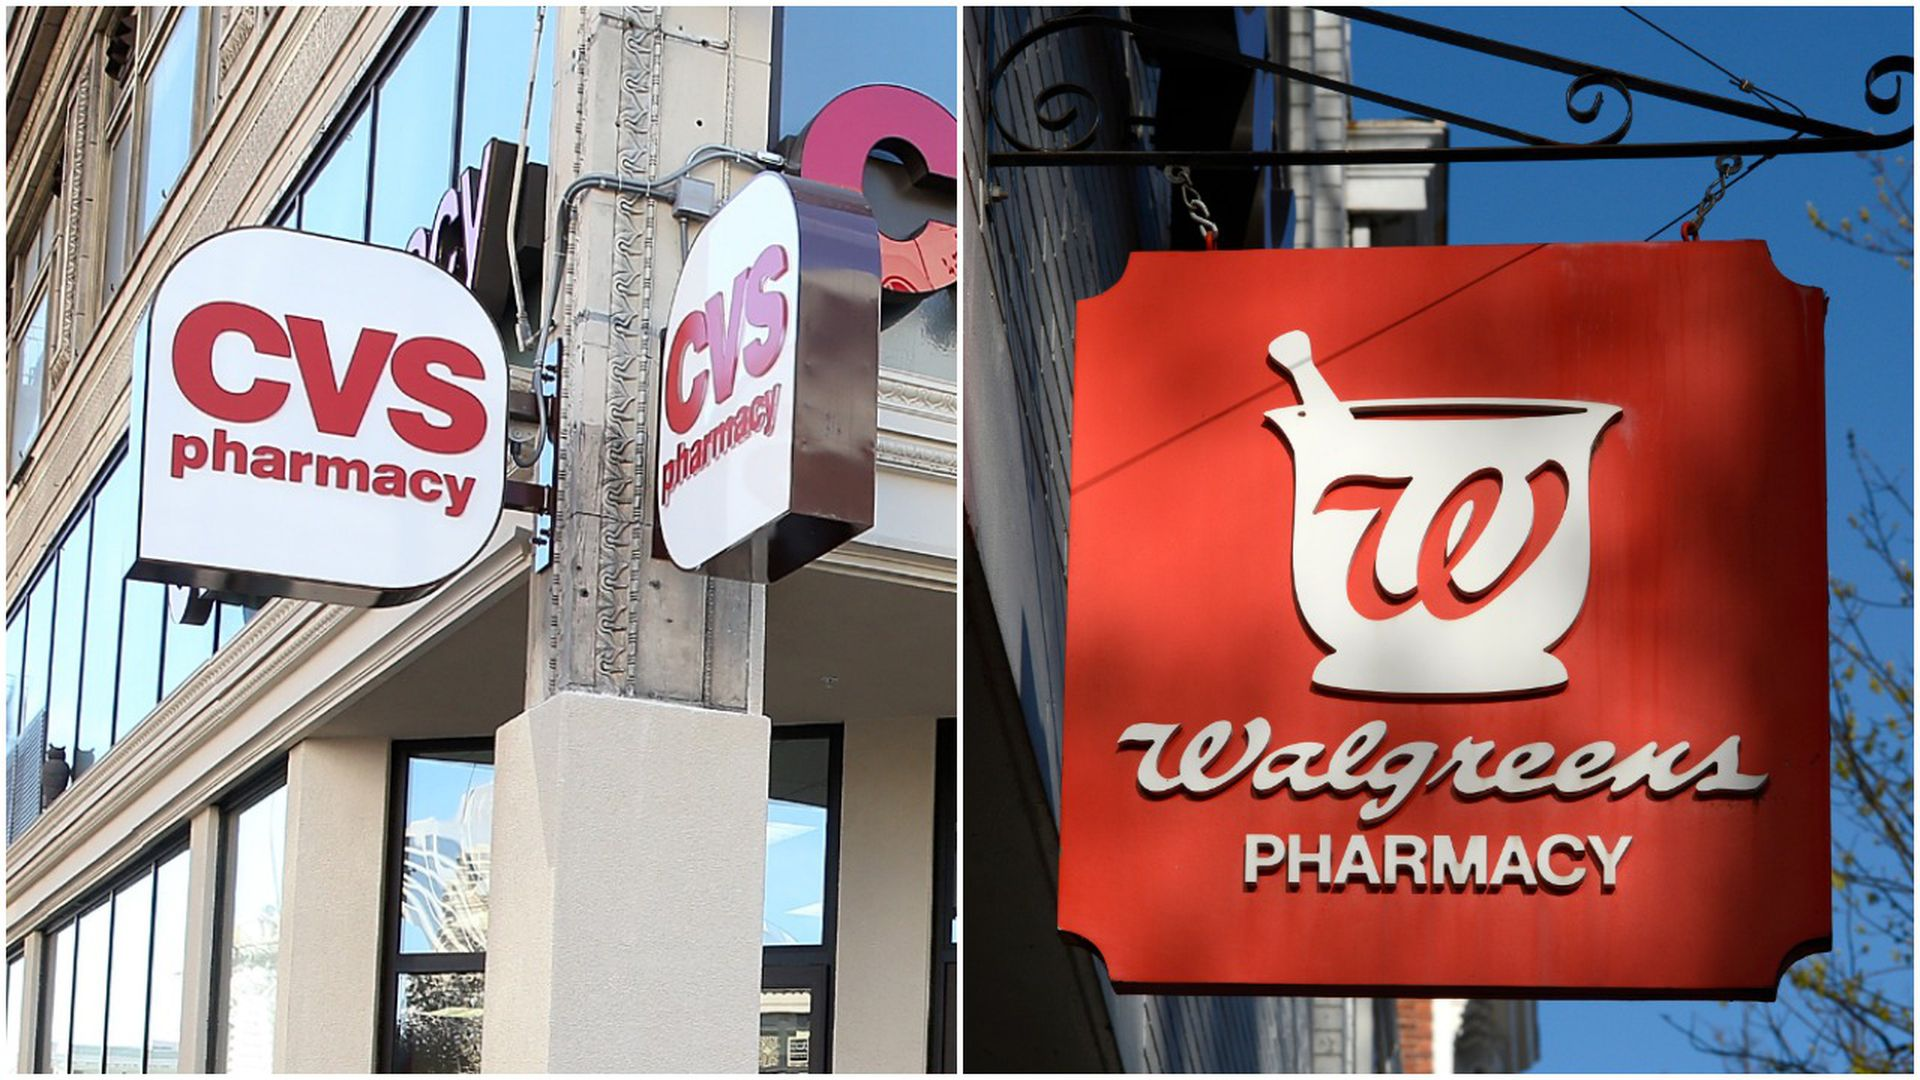 Edited photo of CVS and Walgreens pharmacy signs